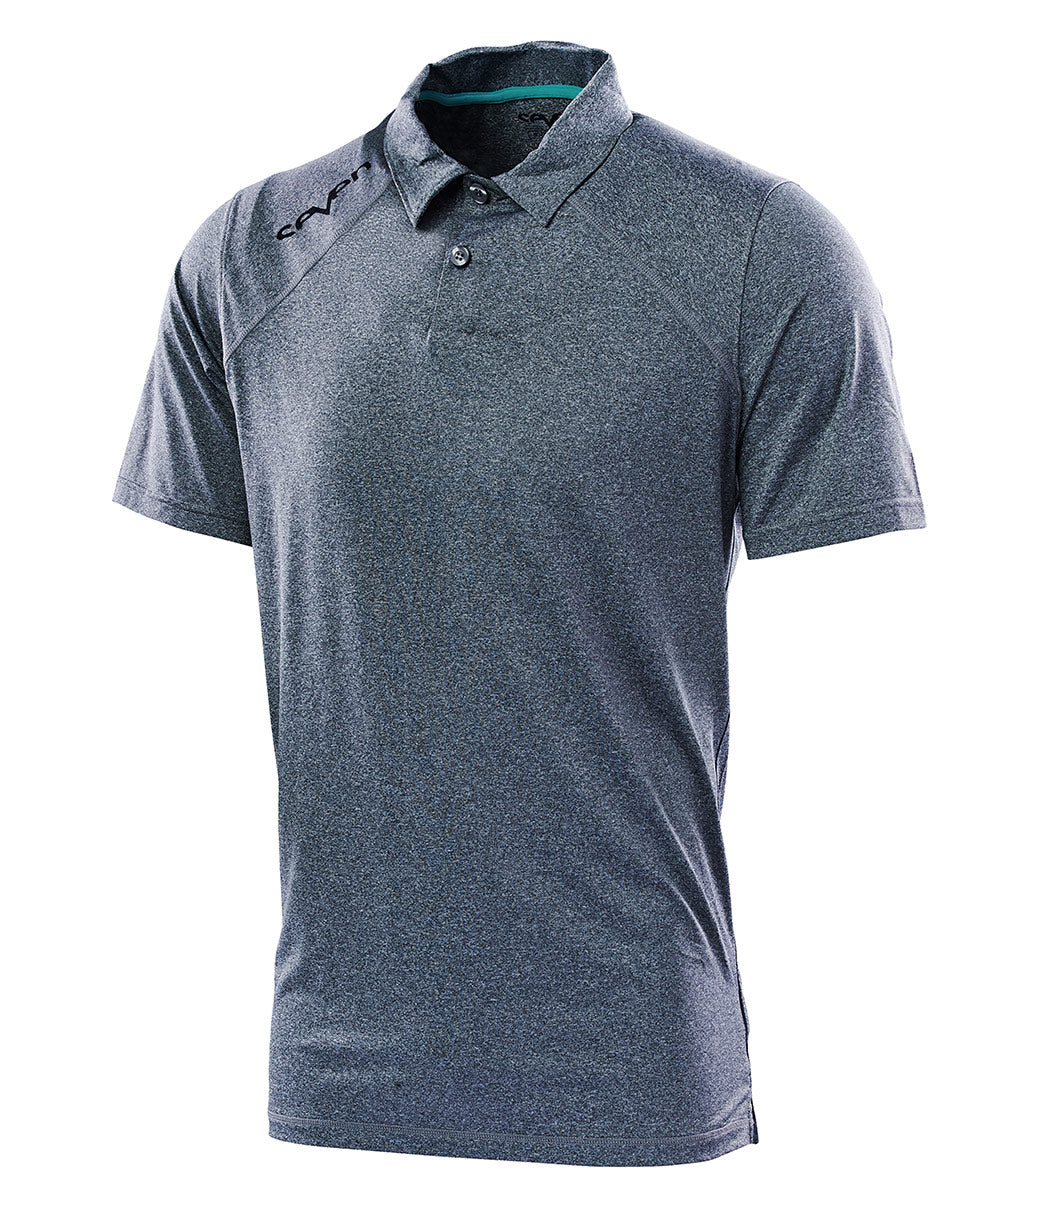 Command Polo - Charcoal Heather